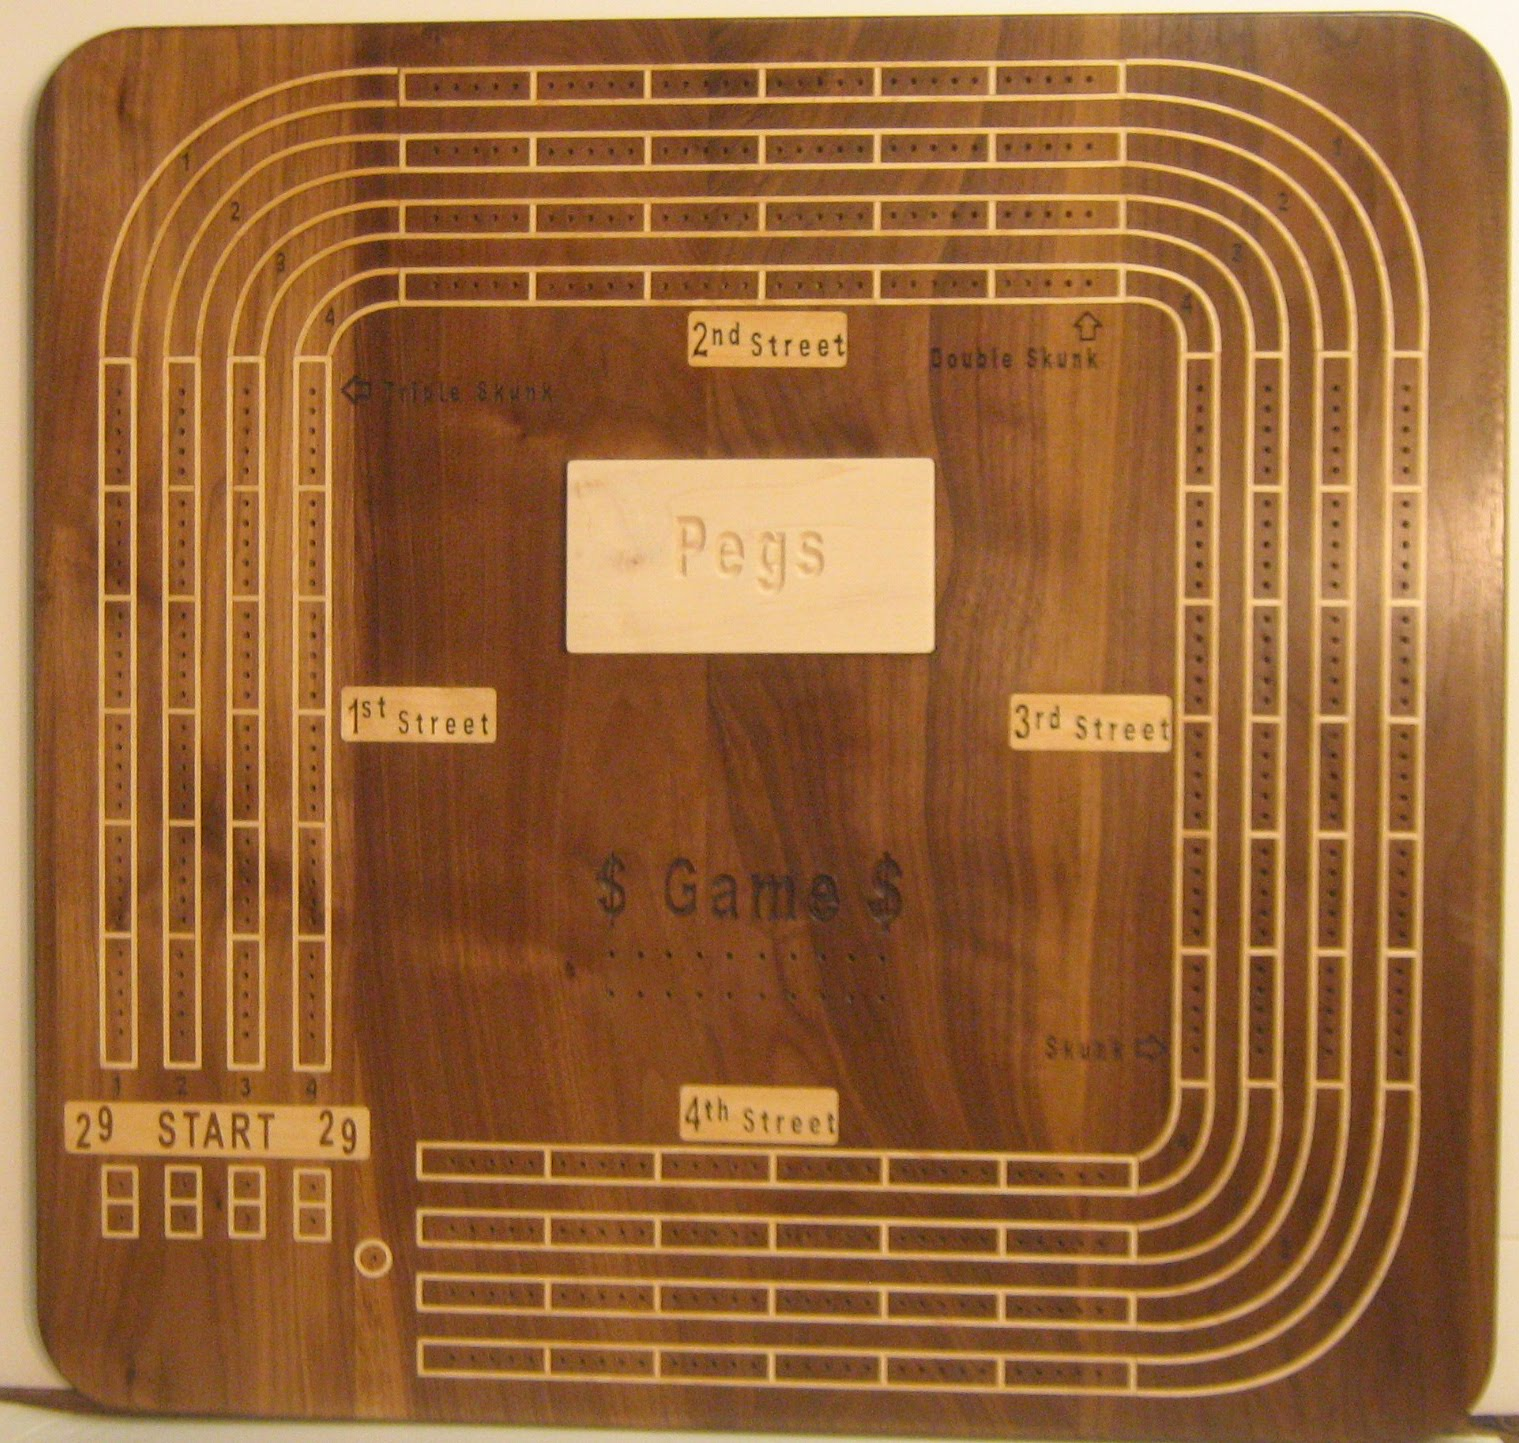 Cribbage board templates template printable cribbage board 1000 cribbage board templates template printable cribbage board maxwellsz